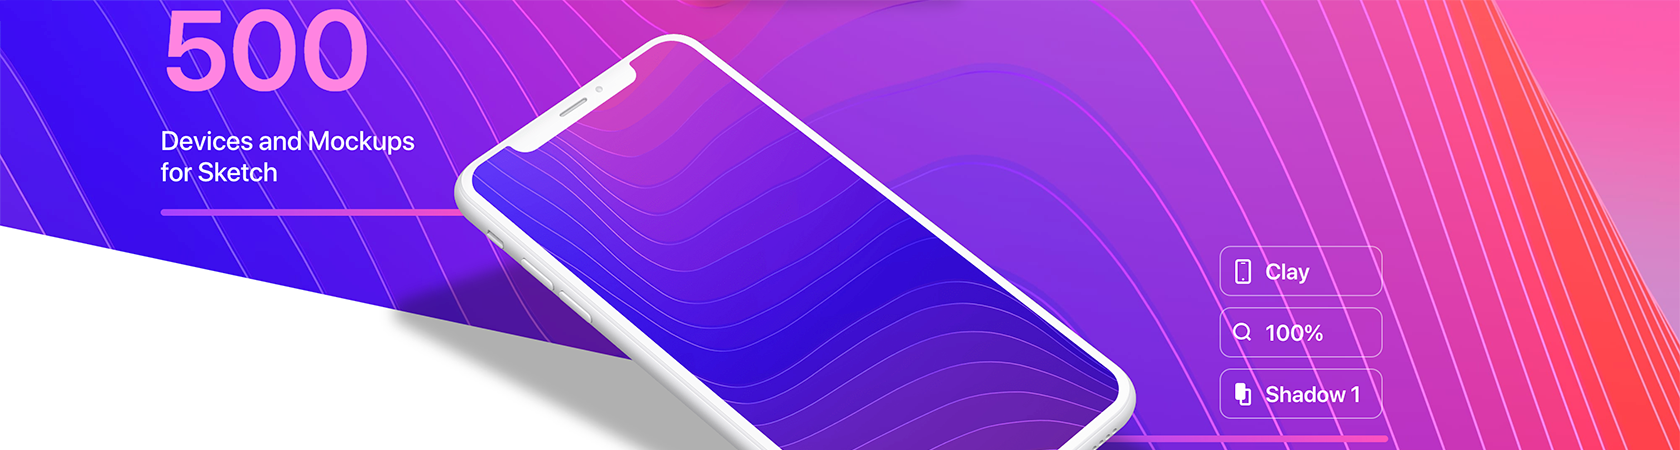 Angle 2 includes 500 device mockups for Sketch